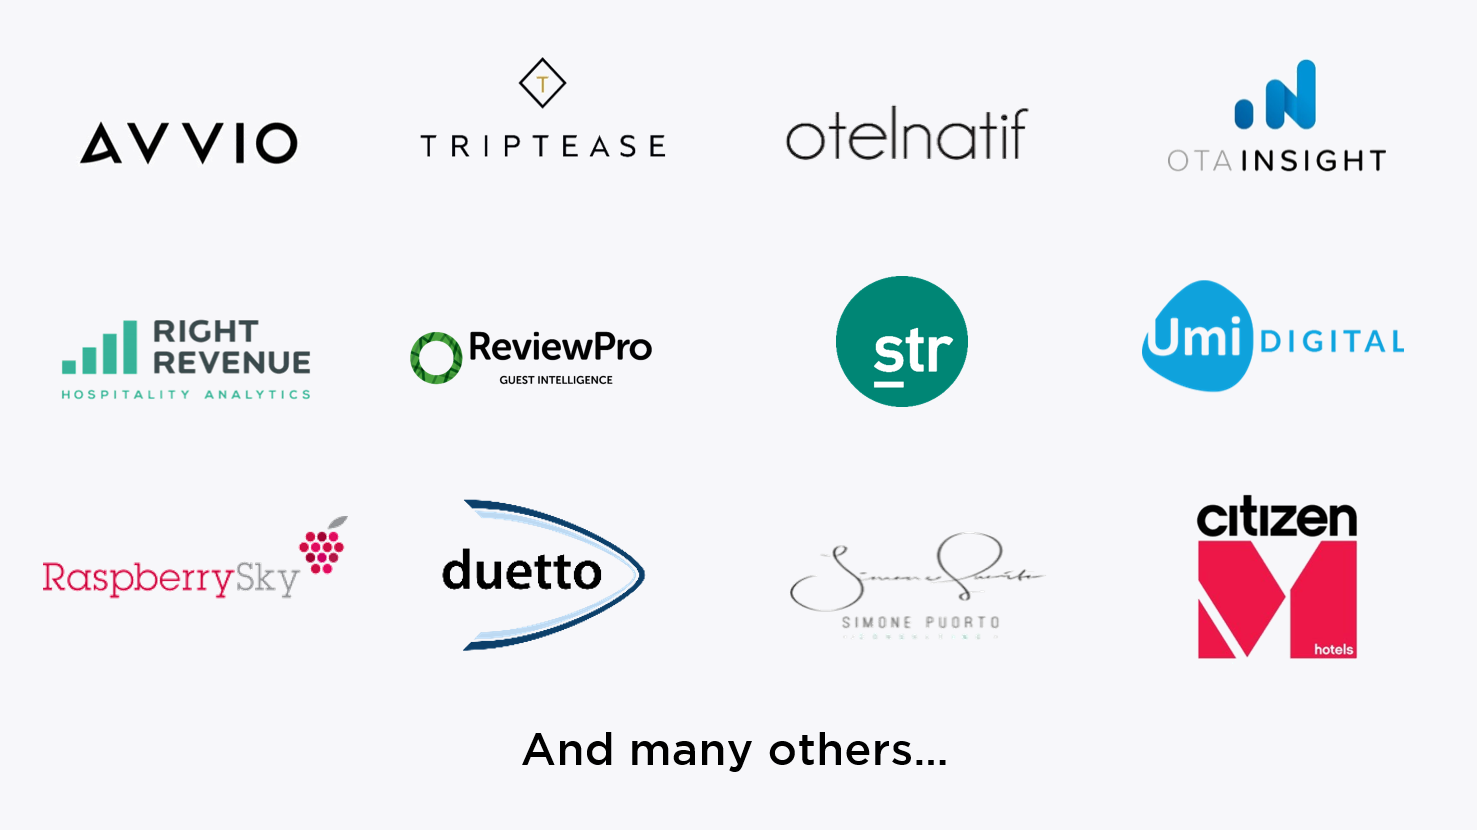 Snapshot Partnering Logos Avvio Triptease Otelnatif Otainsight Right Revenue STR